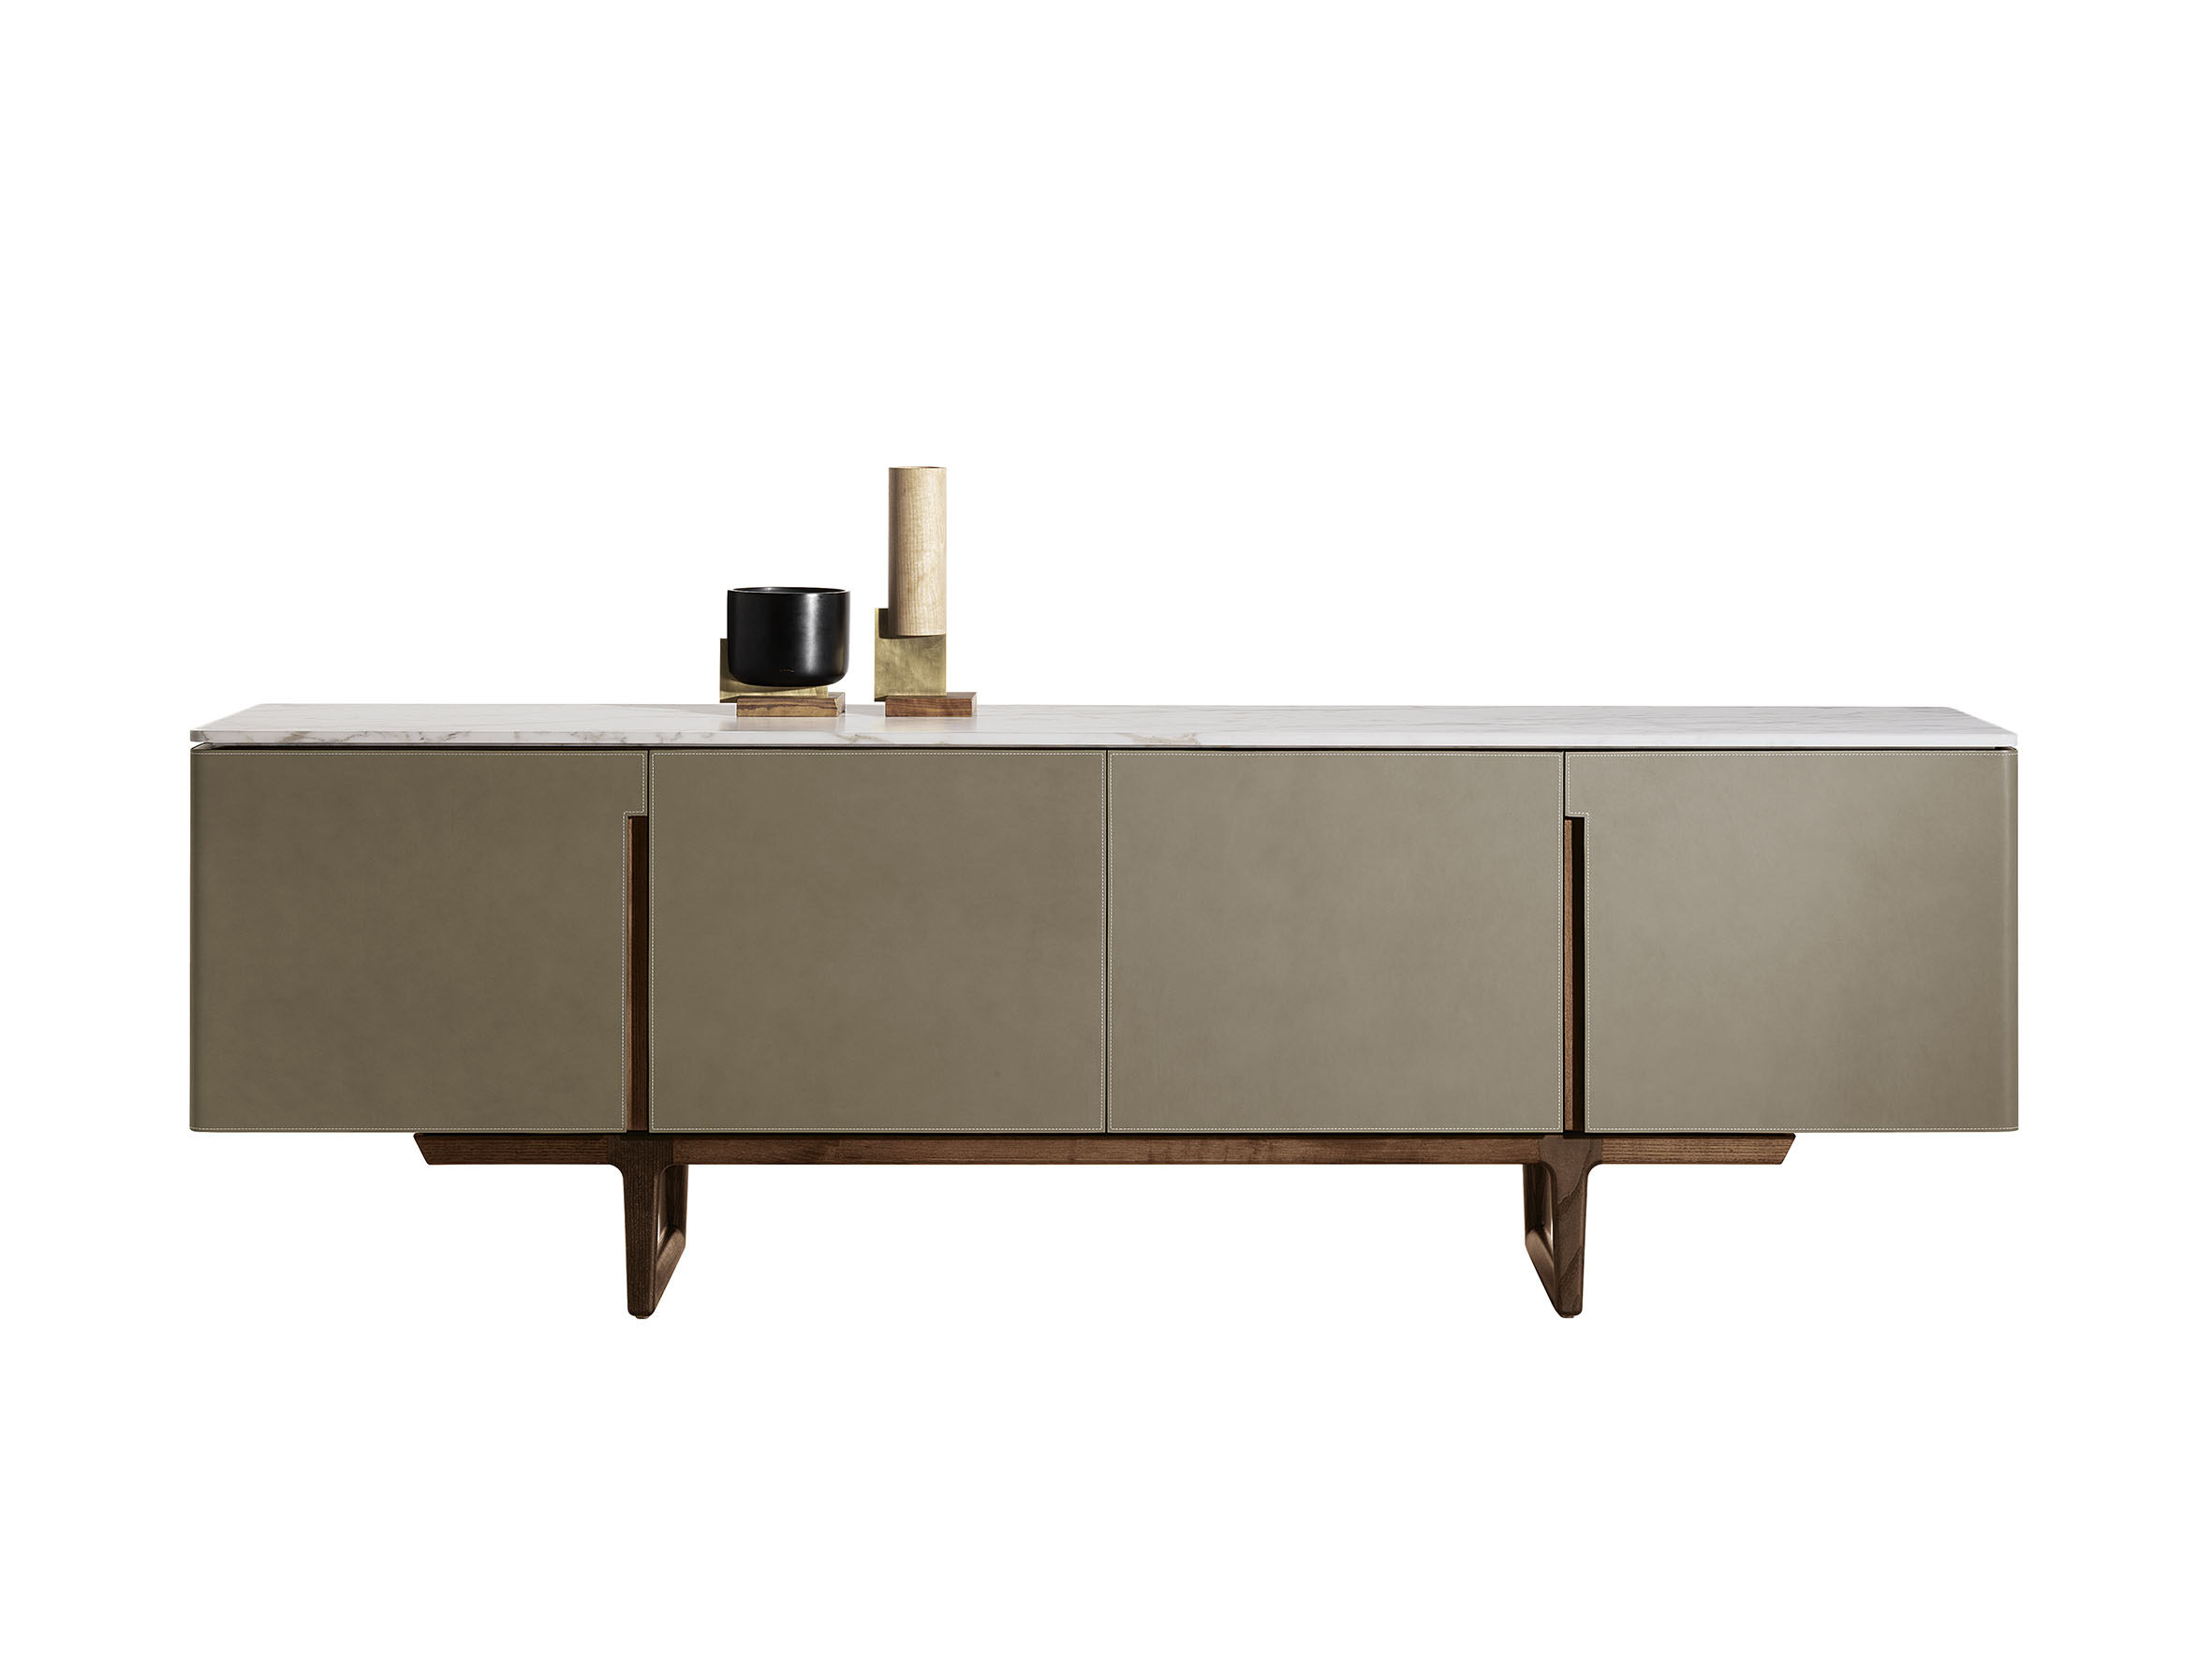 Fidelio sideboard the collection furniture and for Poltrone frau milano